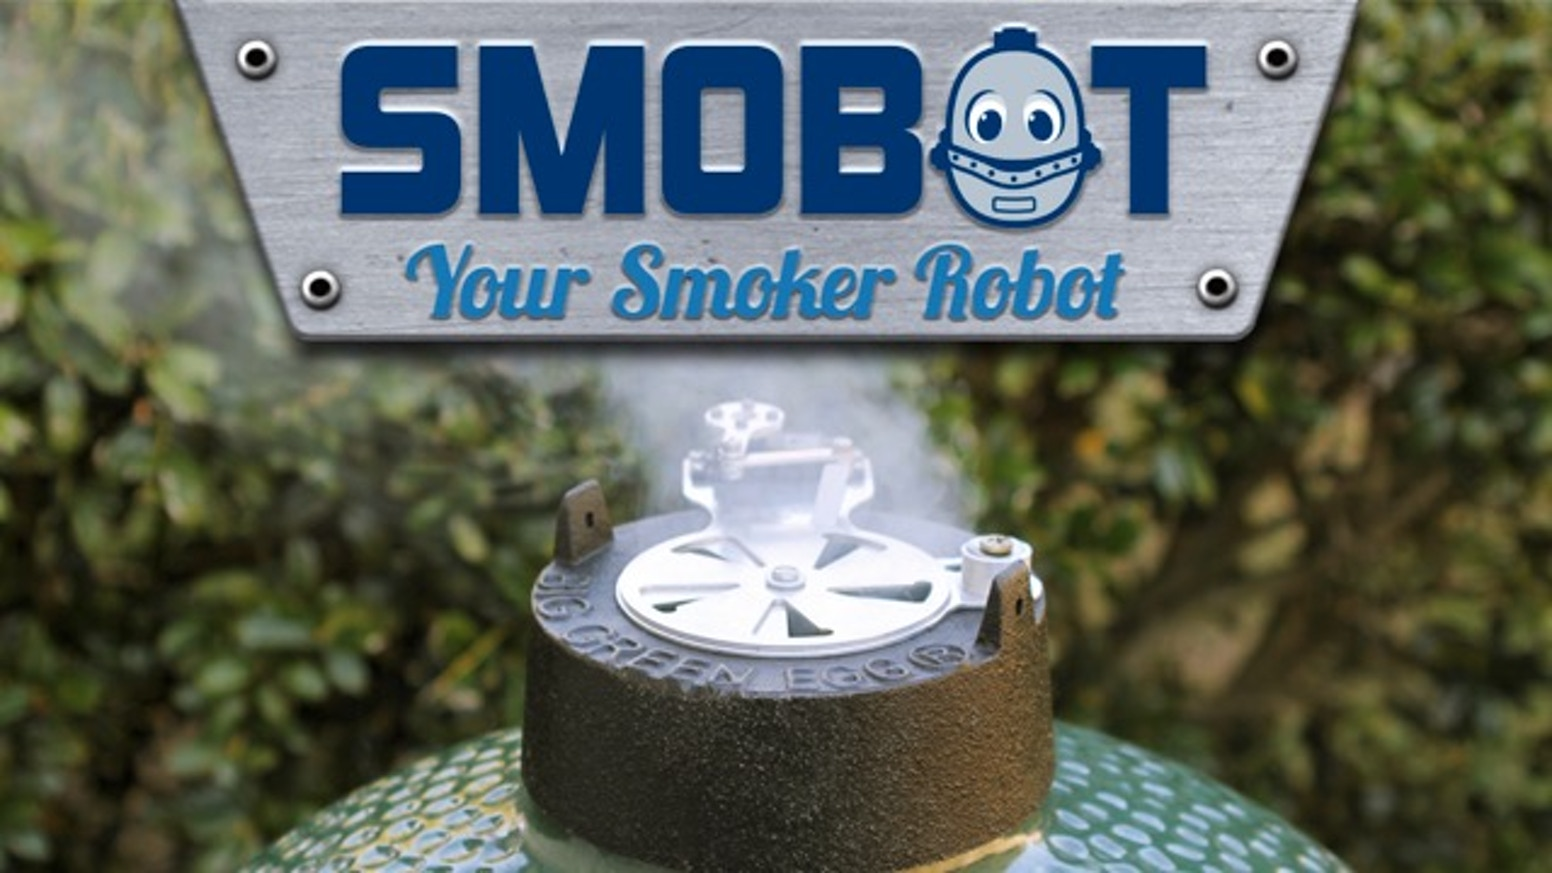 Your Smoker Robot, a WiFi enabled robotic temperature controller that attaches to the top vent of most Kamado style grills and smokers.